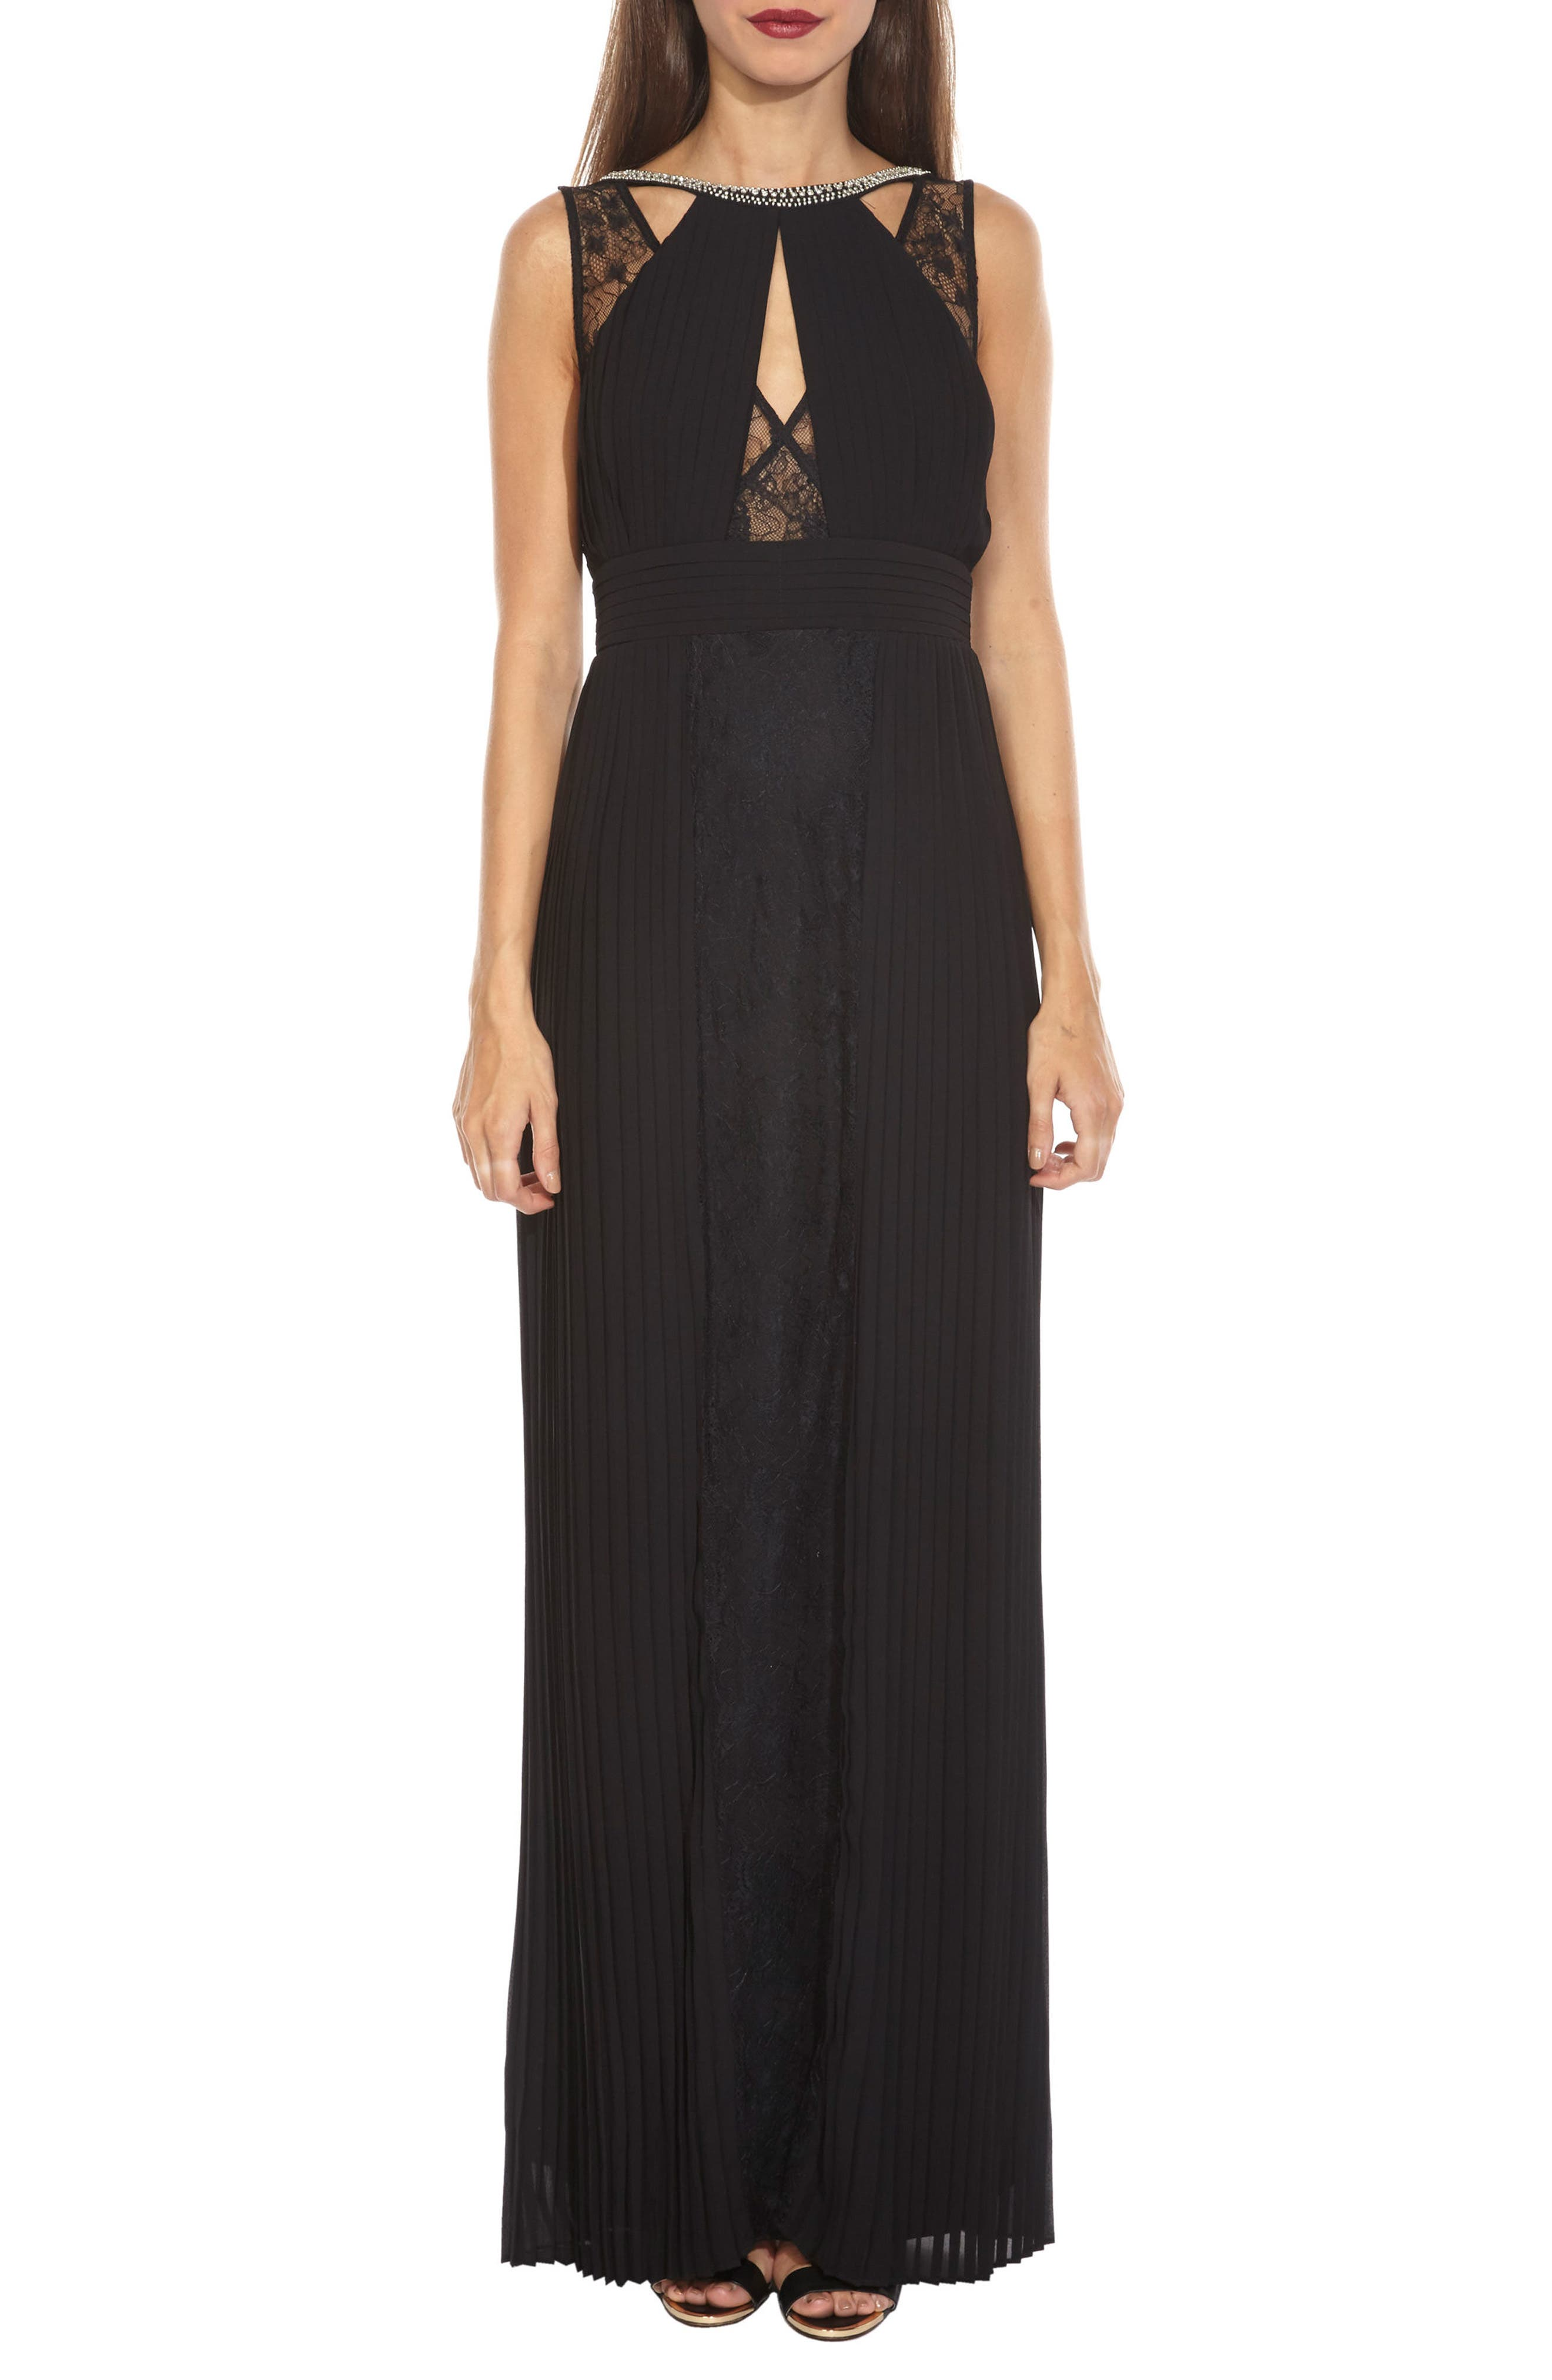 Naly Embellished Lace Trim Maxi Dress,                         Main,                         color, Black